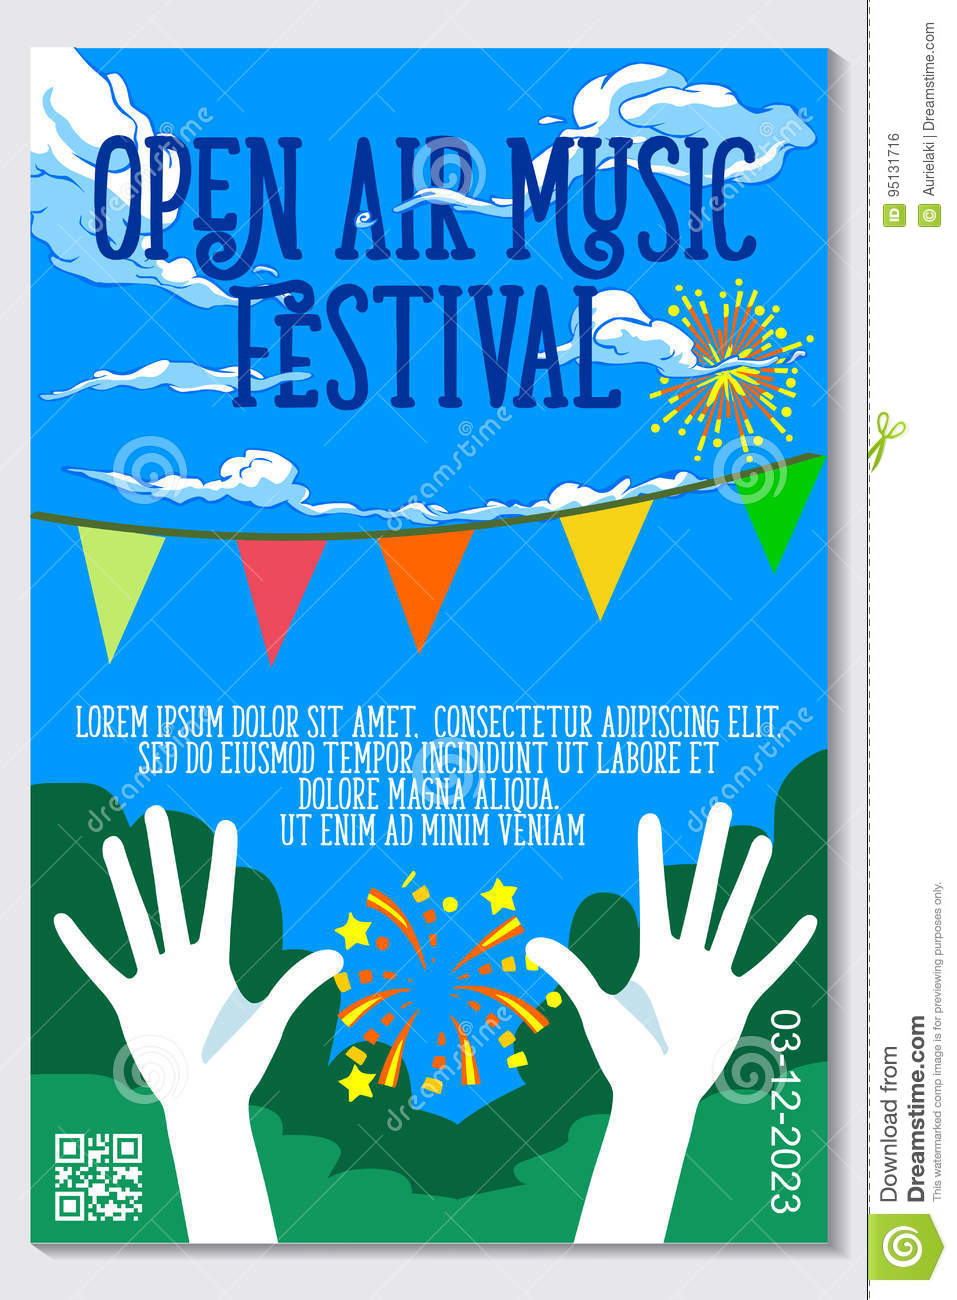 Open Air Music Festival Live Event Vector Poster Design Stock Vector